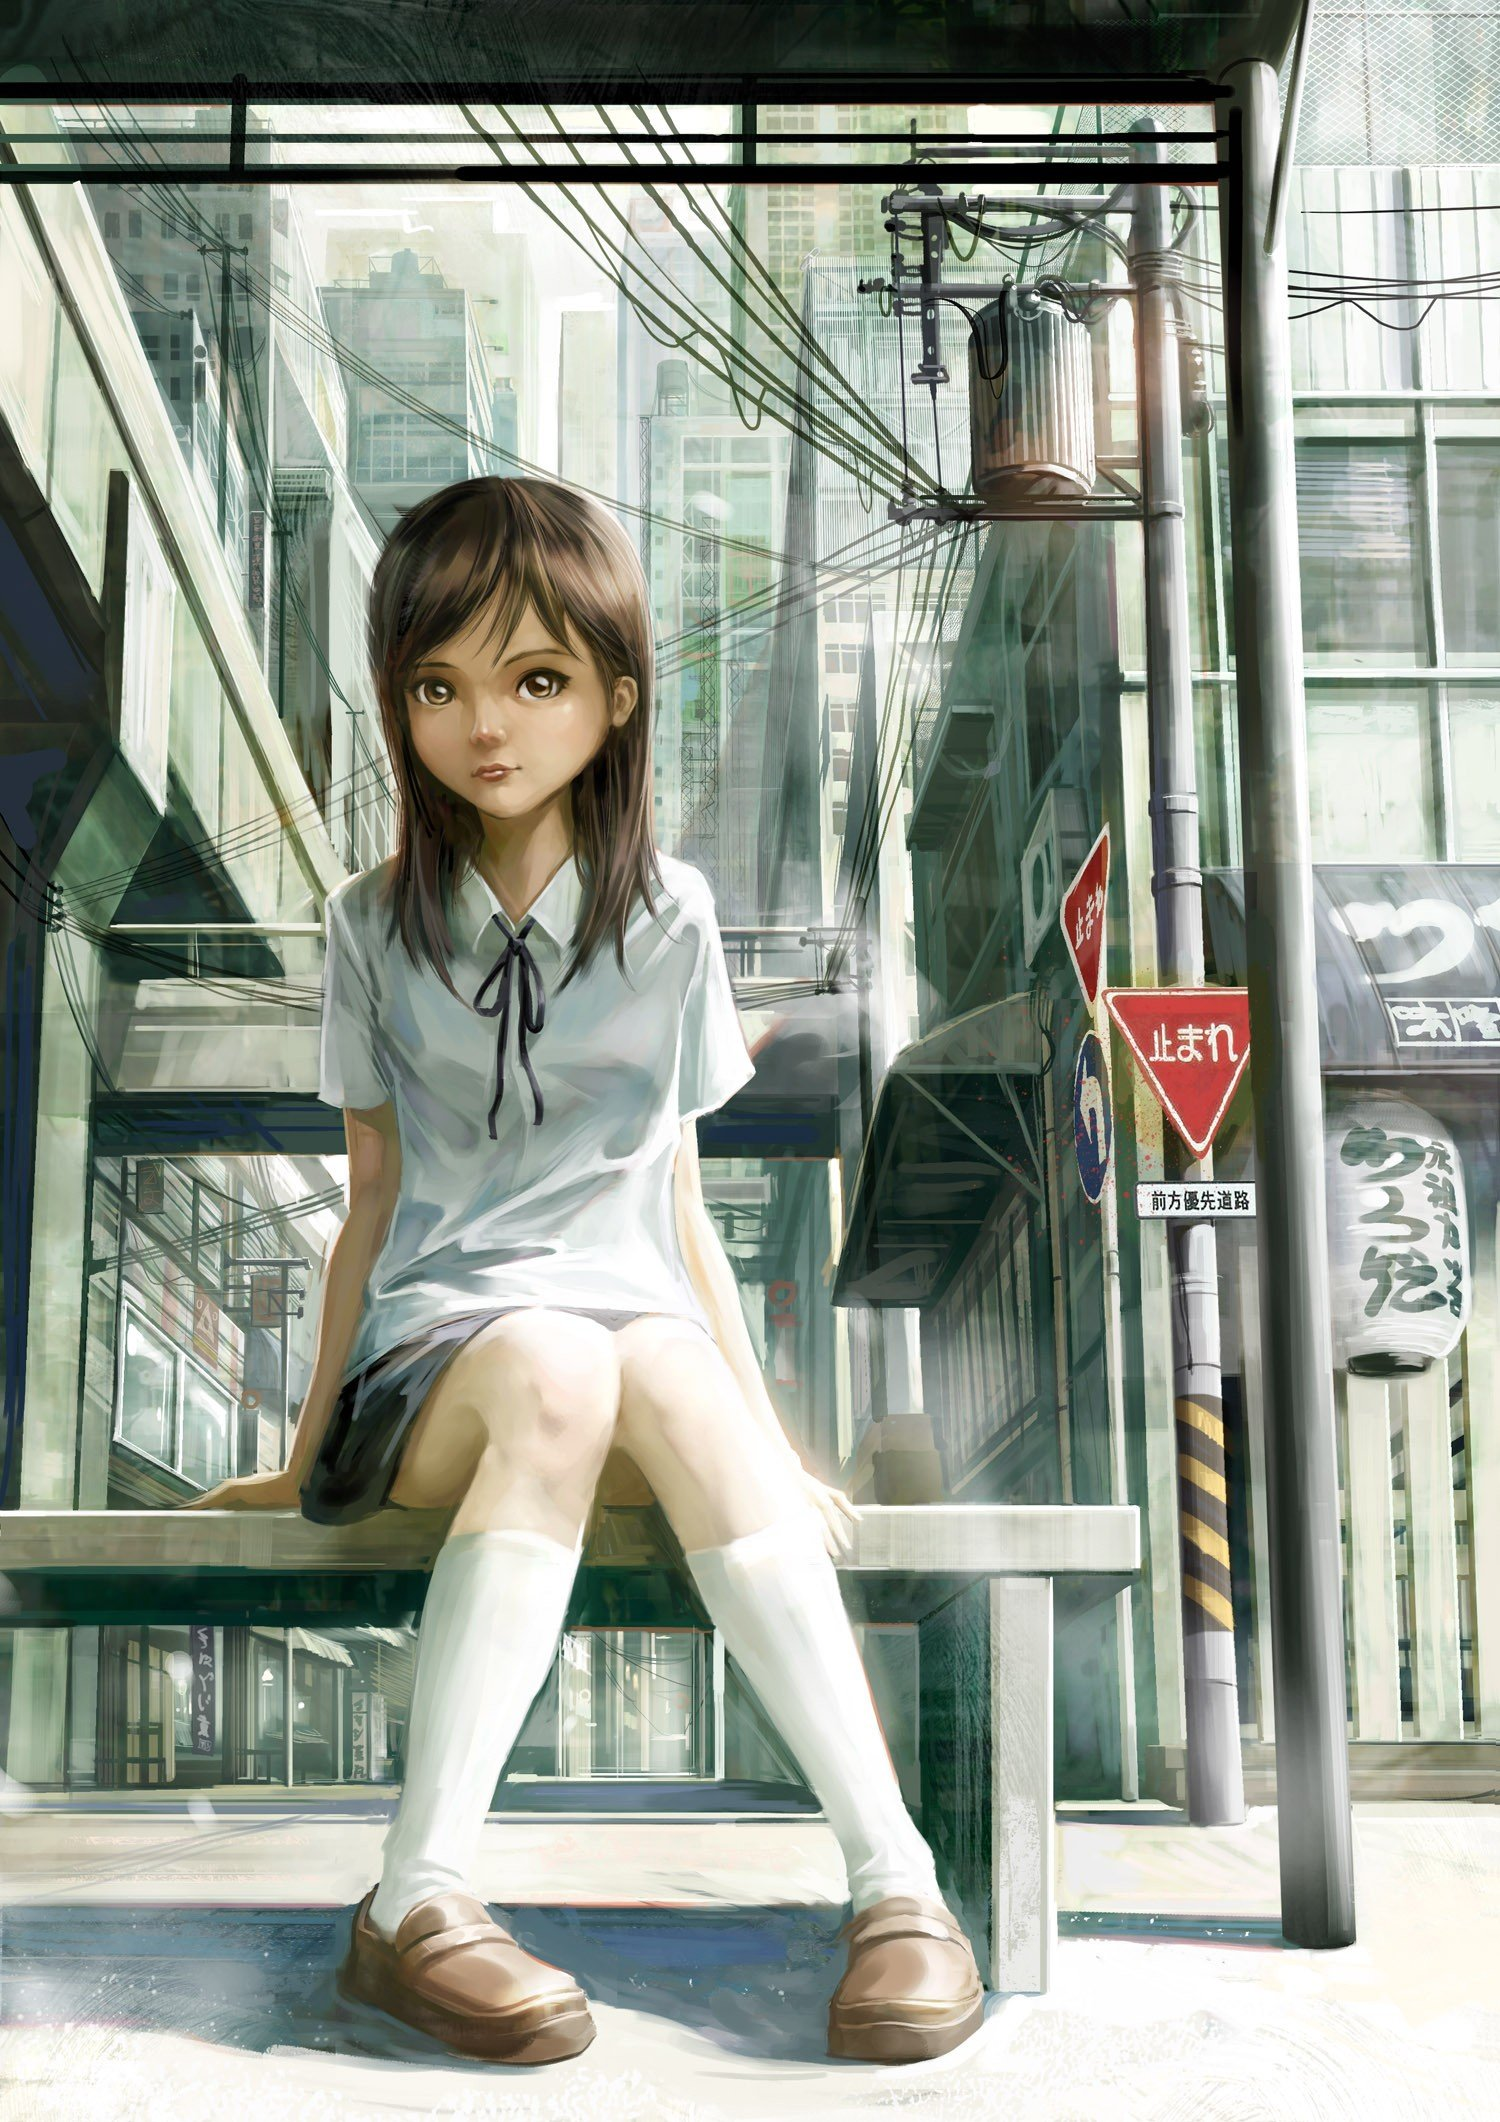 Cityscapes Art Drawing Art Drawings Anime Girls